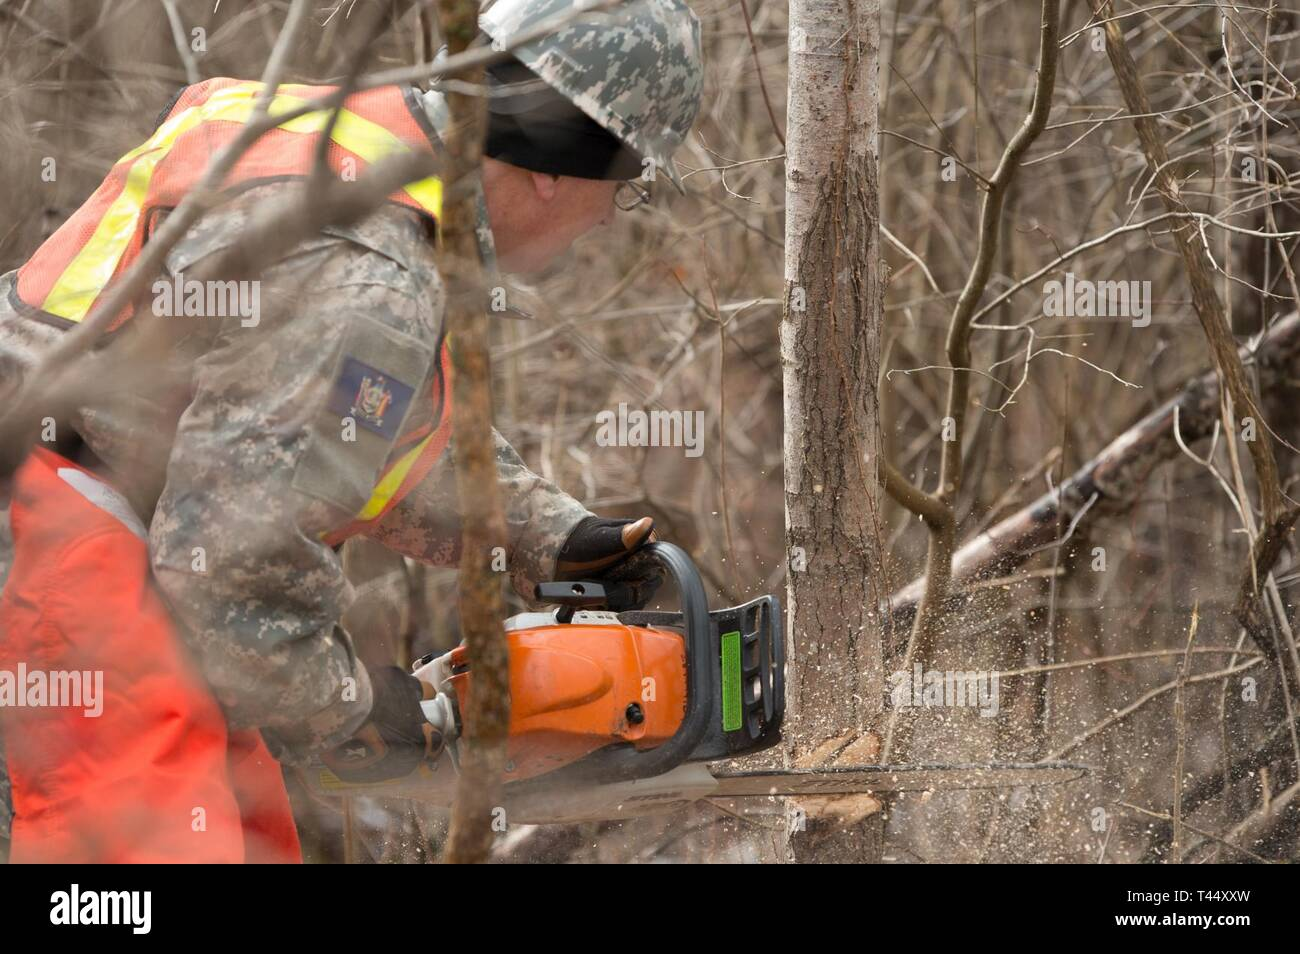 Sgt. Jerry Silvis assigned to the 65th Detachment, 10th Area Command, New York Guard, Buffalo, cuts into a tree with a chainsaw at Youngstown Local Training Area, Feb. 24, 2019. The training team was composed of New York Army National Guard and New York Guard Soldiers. They trained on how to use the equipment properly and safely. These Soldiers are just a few of more than 250 Soldiers and Airmen that are deployed to Western New York for debris clearing missions in support of Operation February Winter Storm. Stock Photo